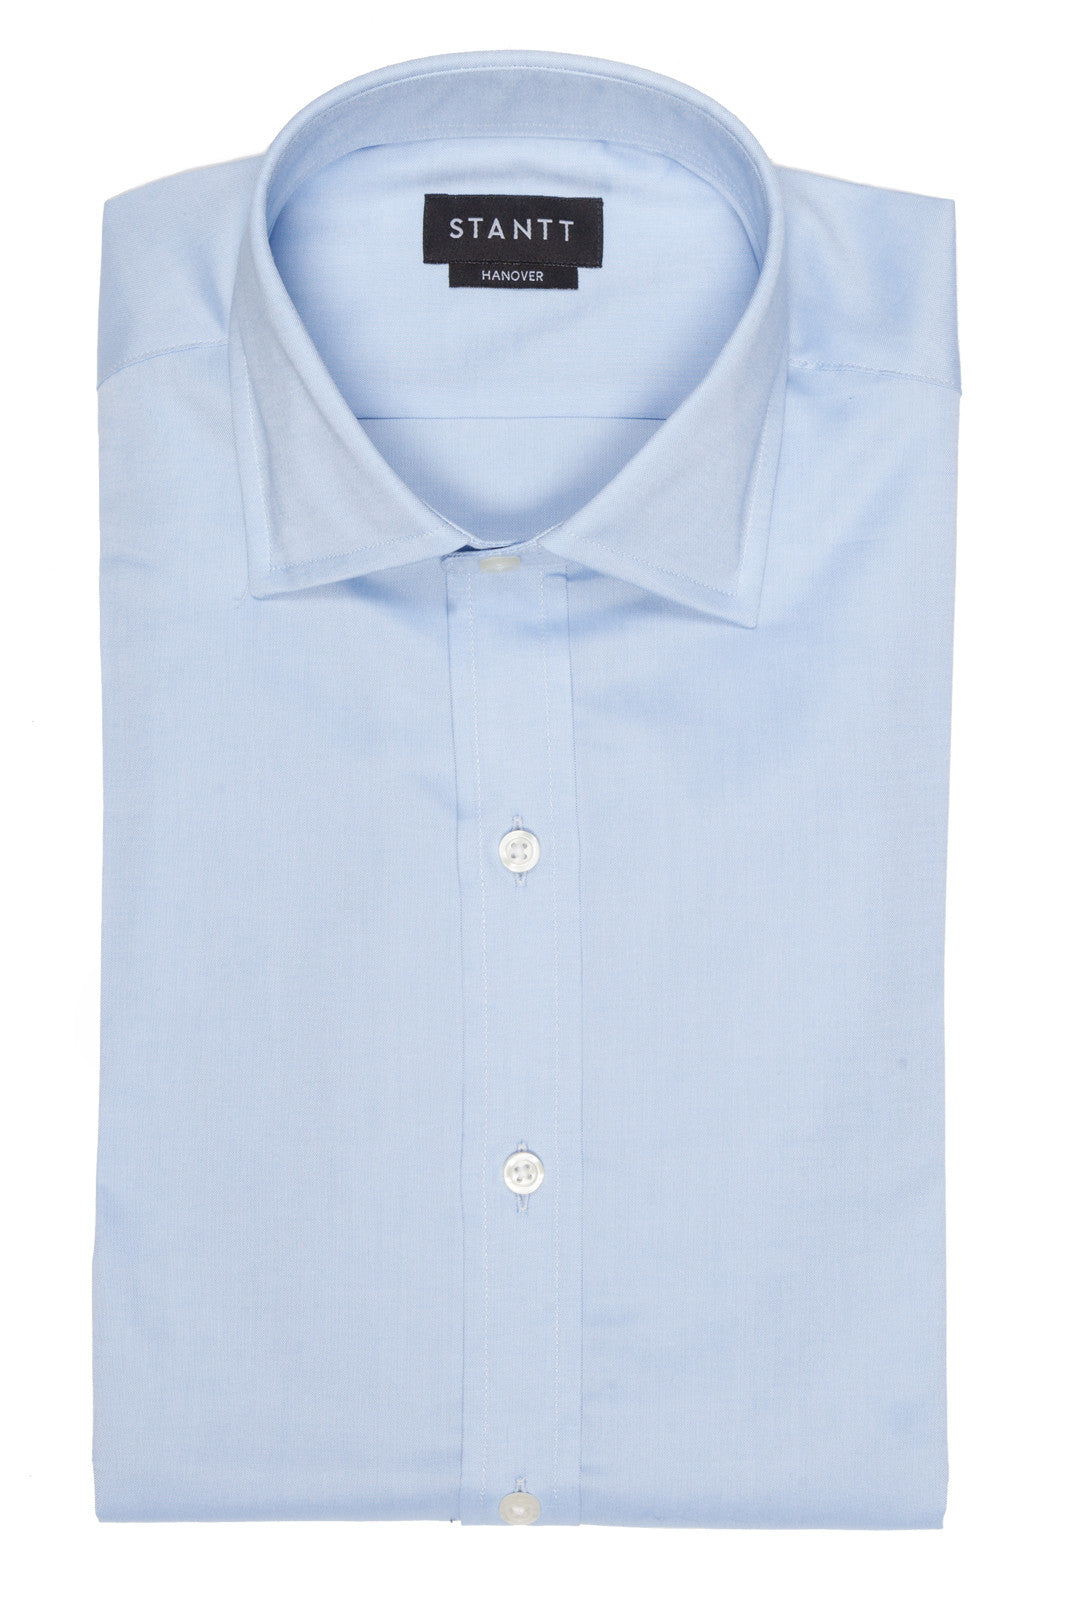 Light Blue Pinpoint Oxford: Modified-Spread Collar, Barrel Cuff